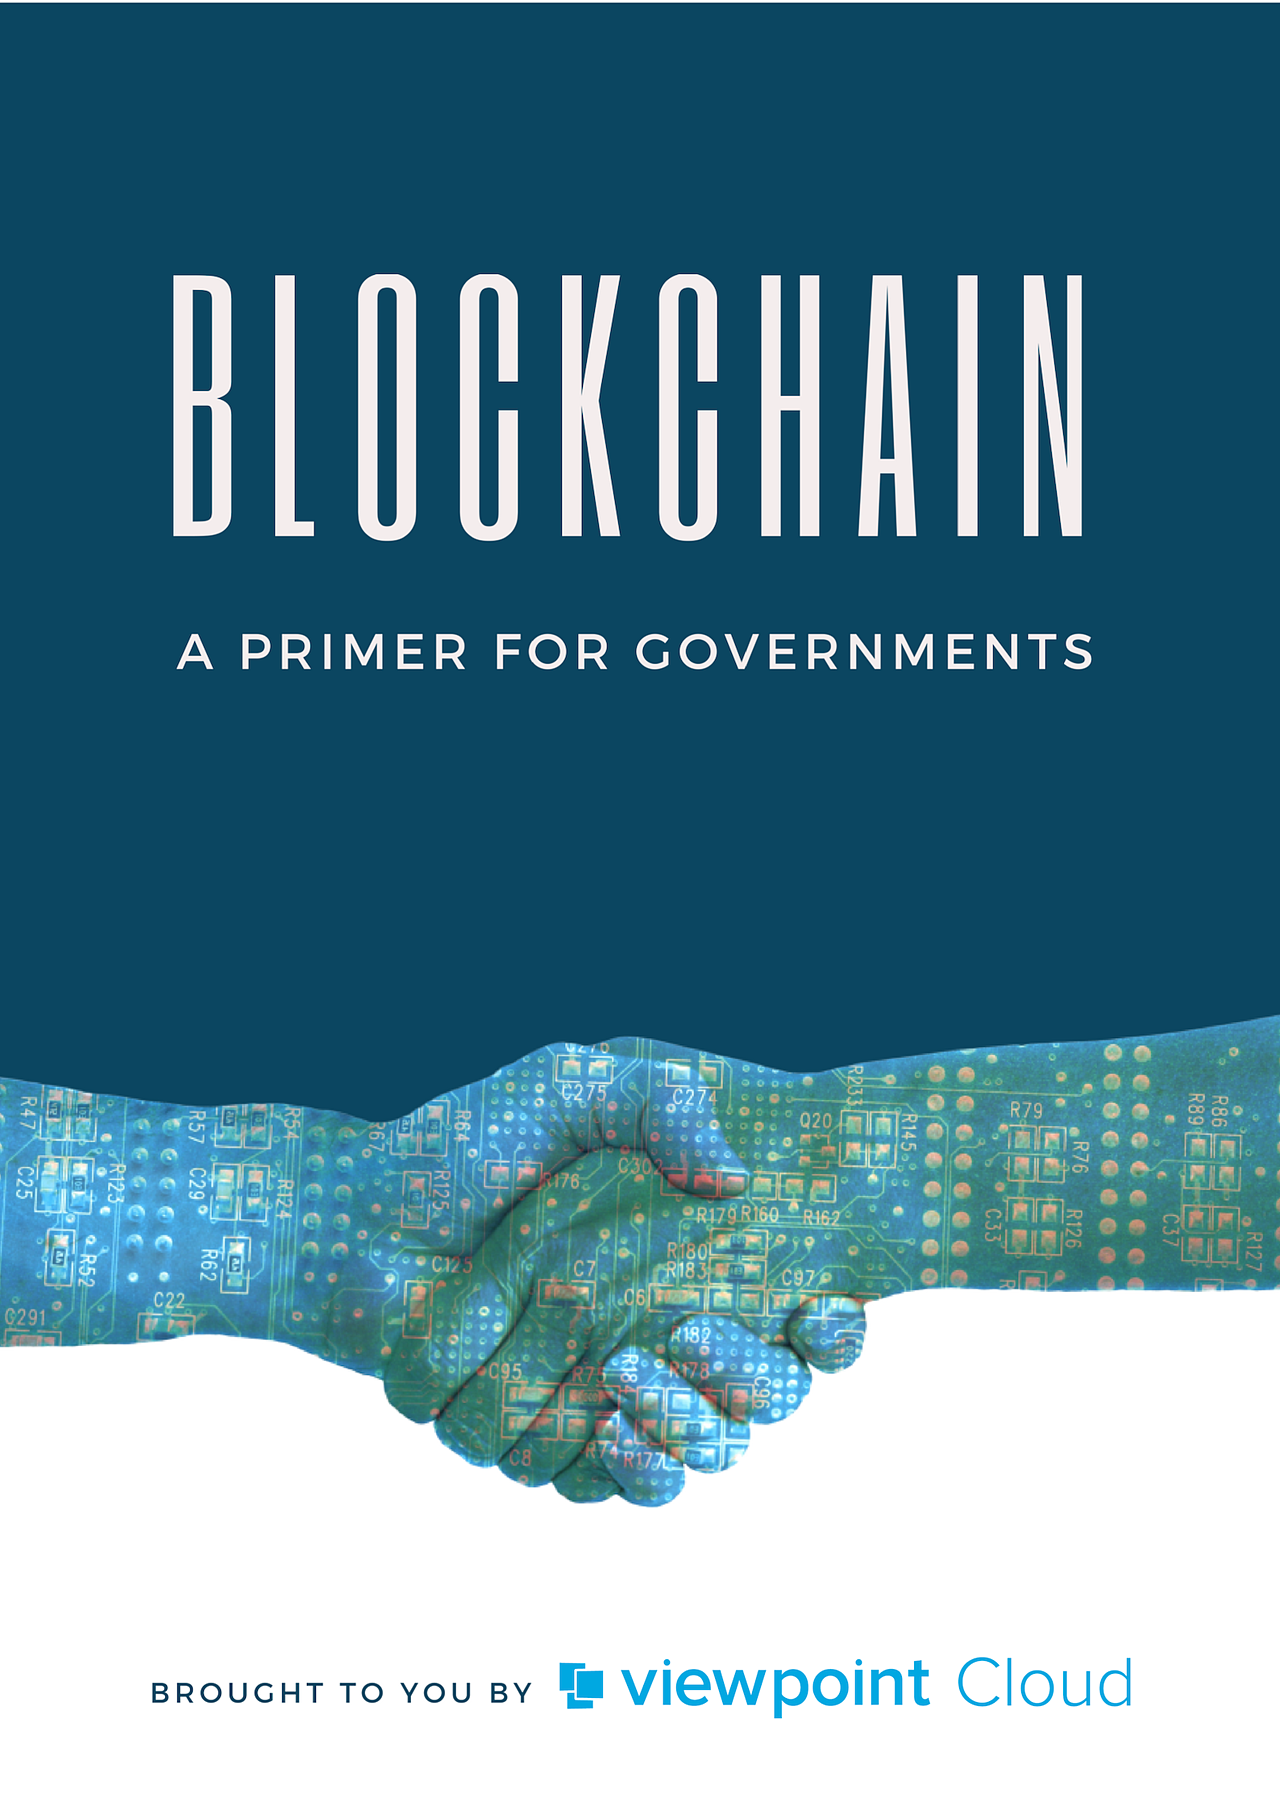 [eBook] Blockchain: A Primer for Governments